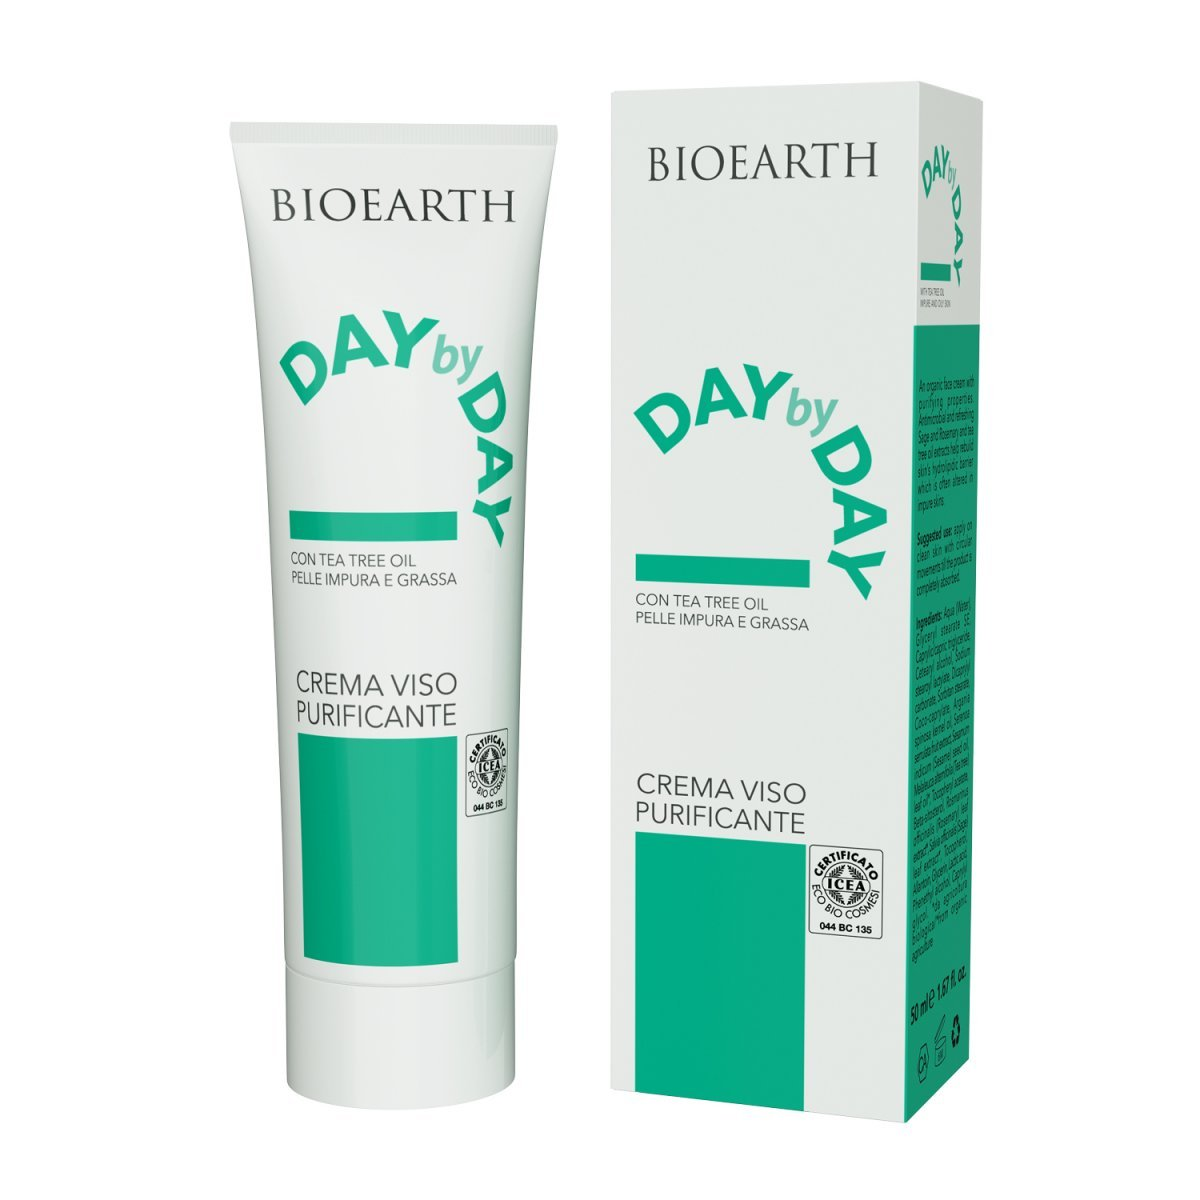 DaybyDay OK - Face purifying cream for impure skin